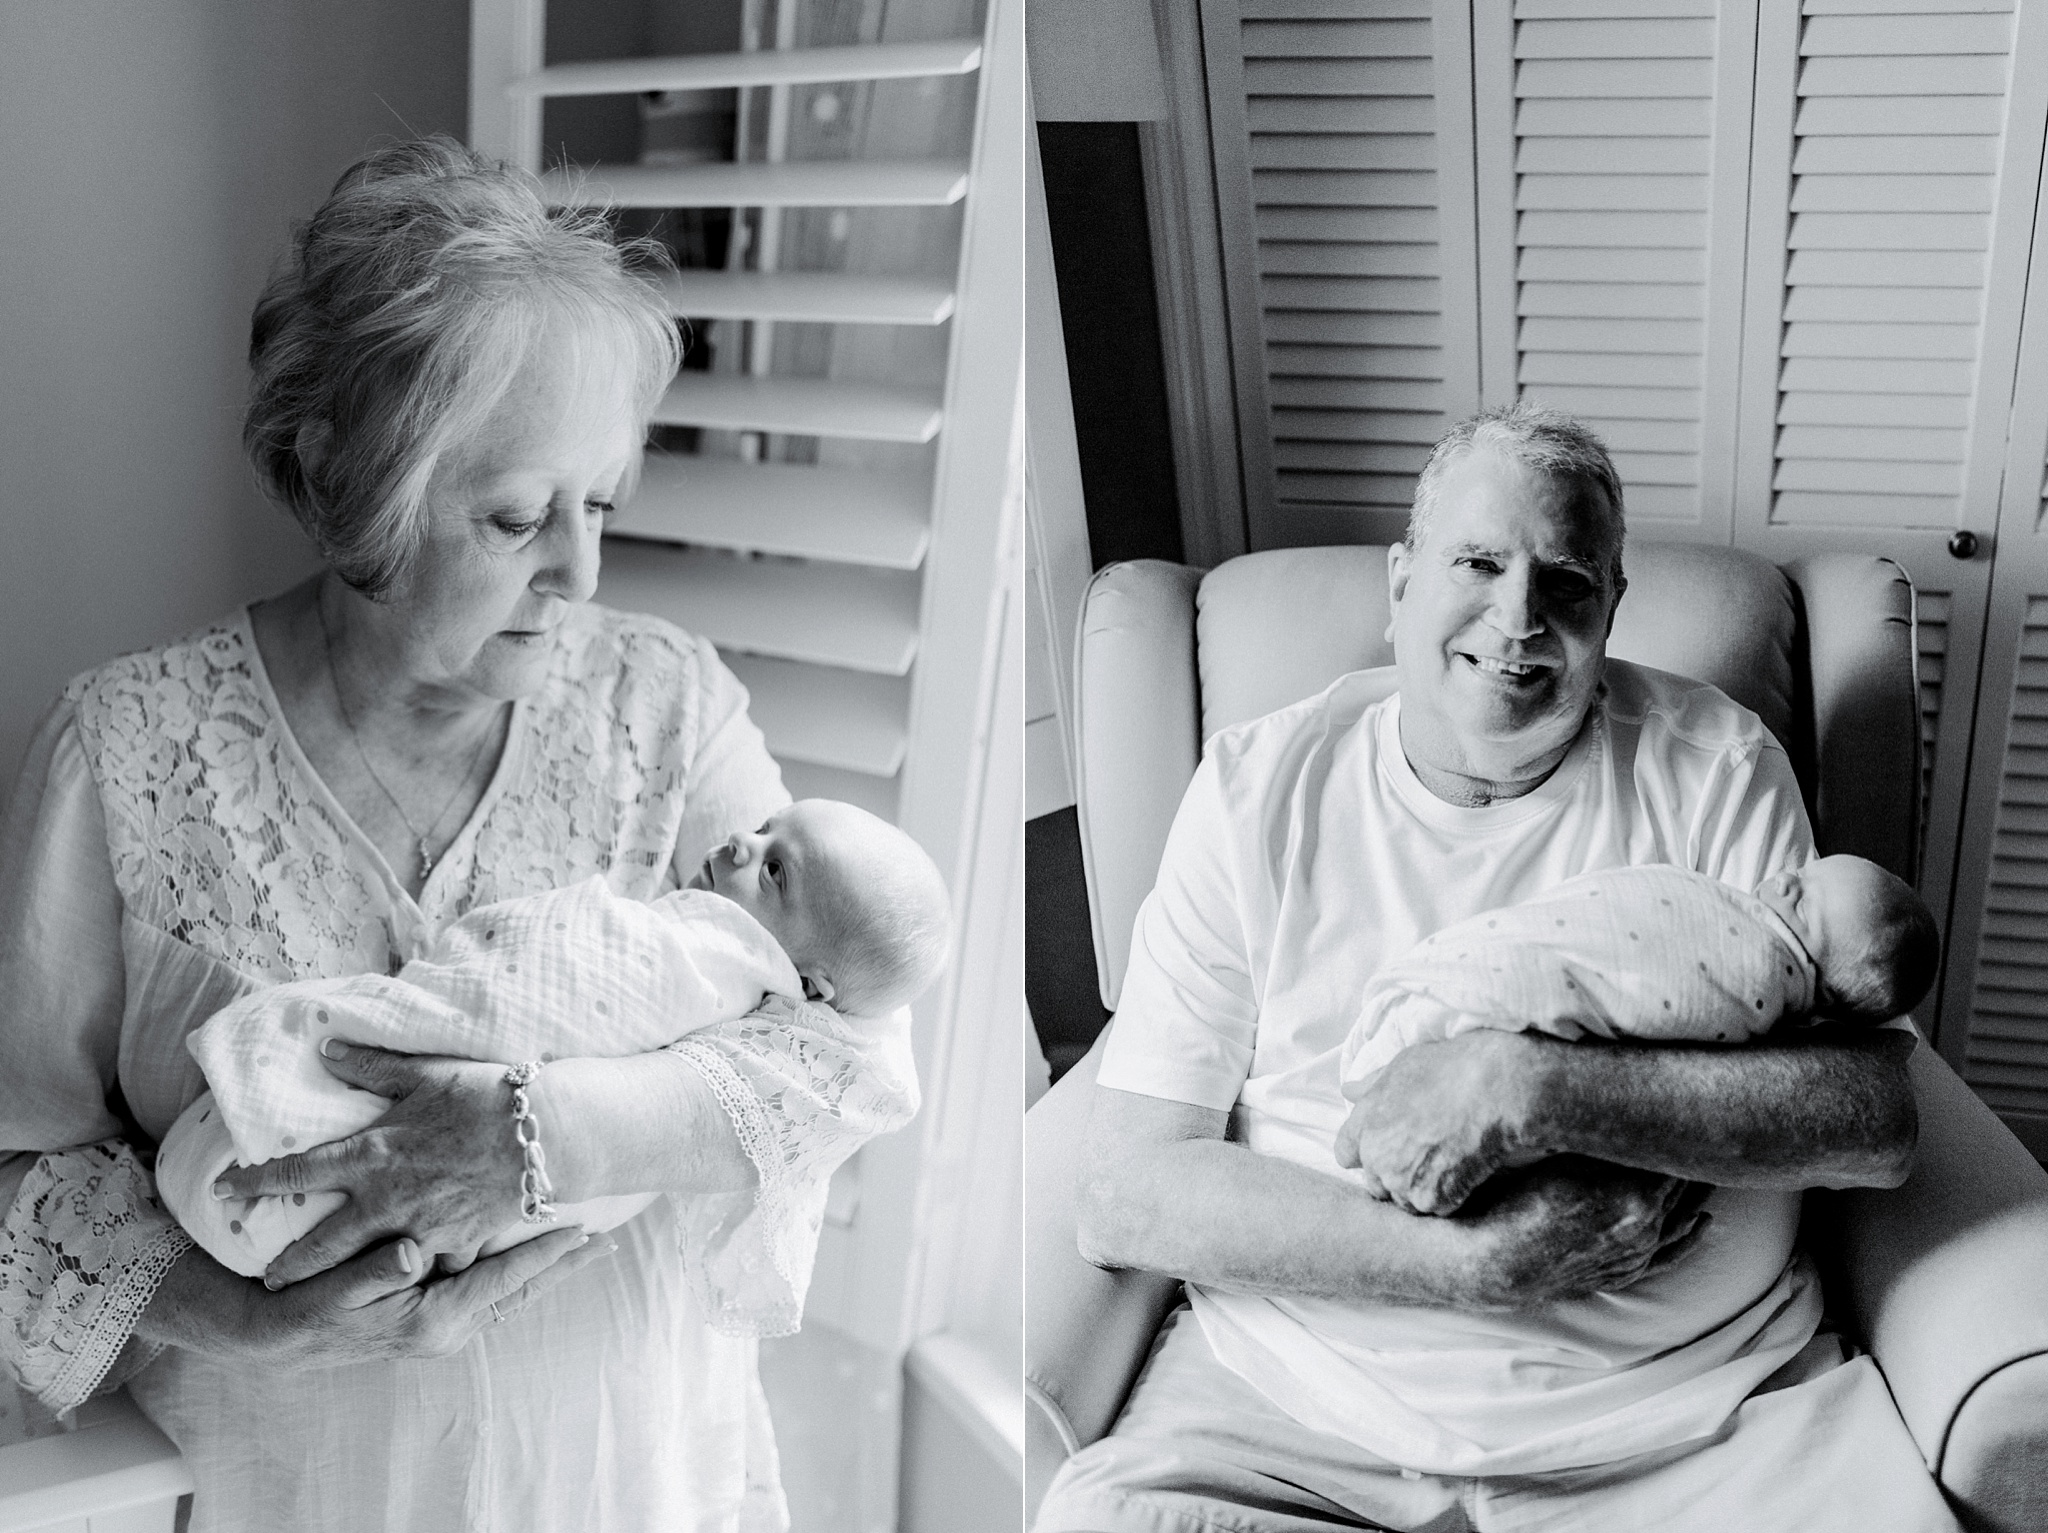 atlanta-georgia-film-lifestyle-newborn-photographer-brooks-wilder-61.jpg